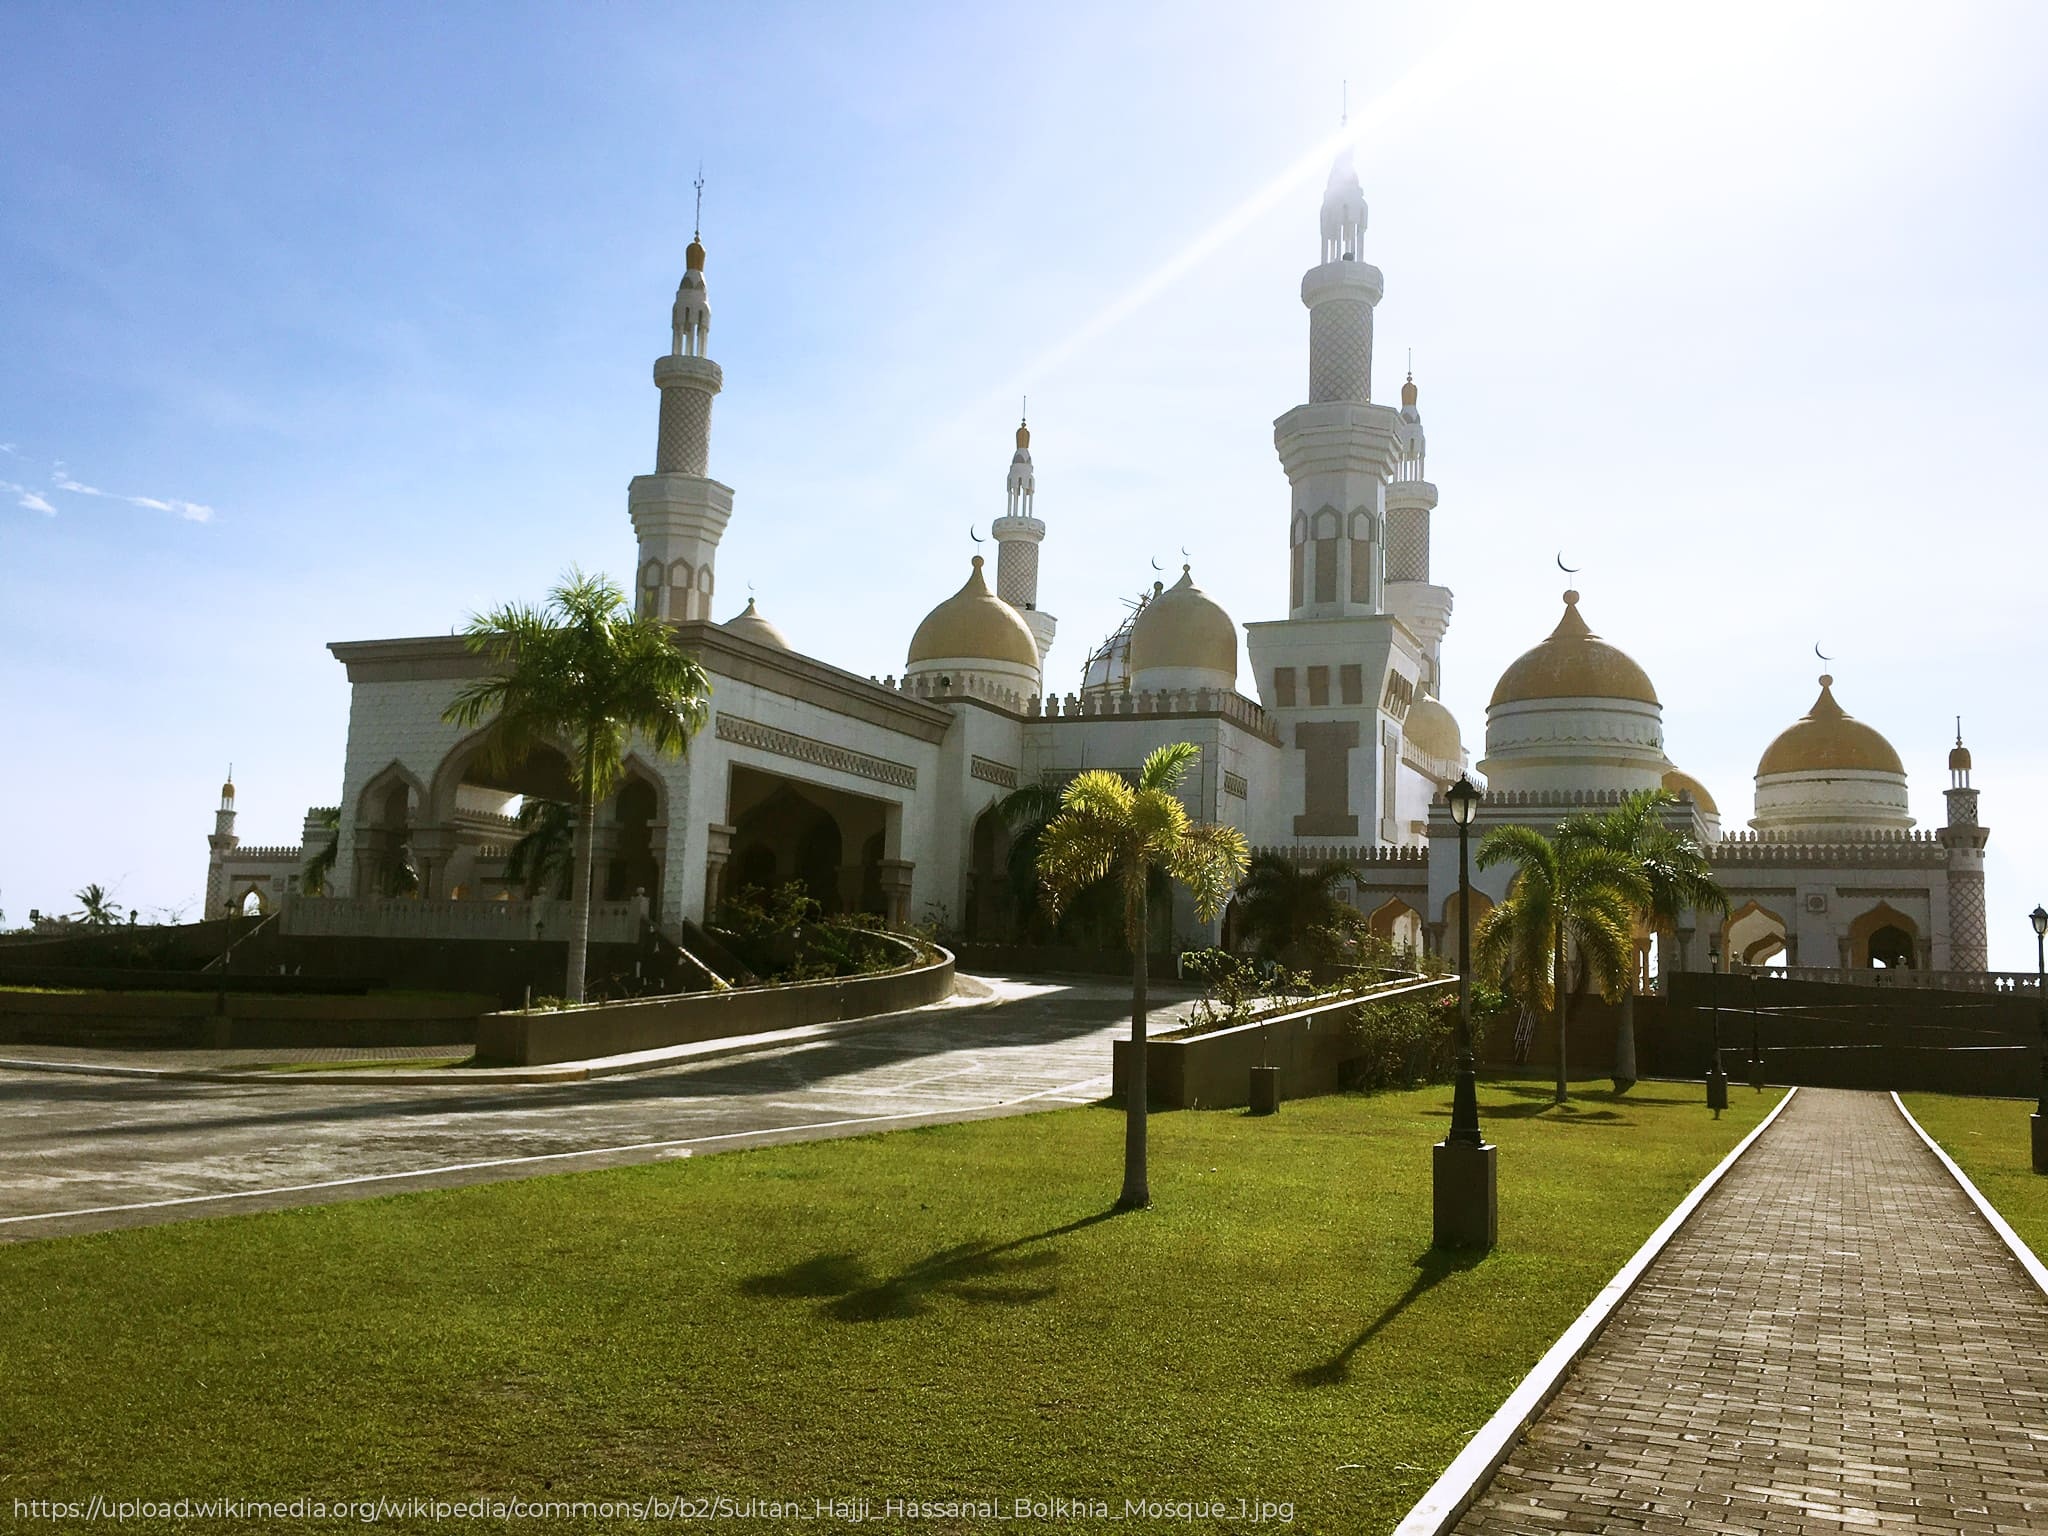 image of the mosque building in mindanao